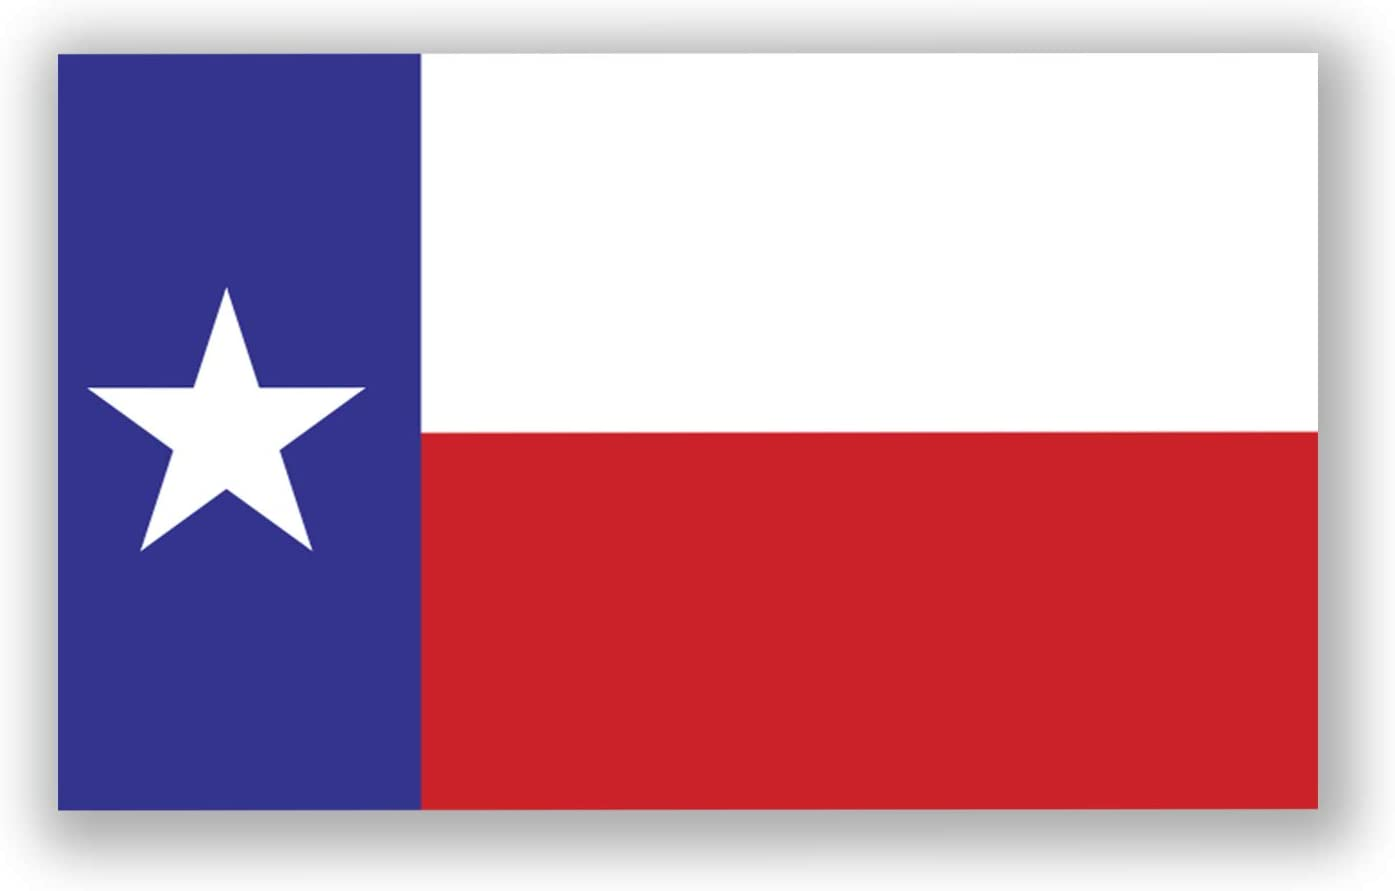 Texas State Flag Magnet | 5-Inches by 3-Inches | Premium Quality Heavy Duty Magnet | MagnetPD349